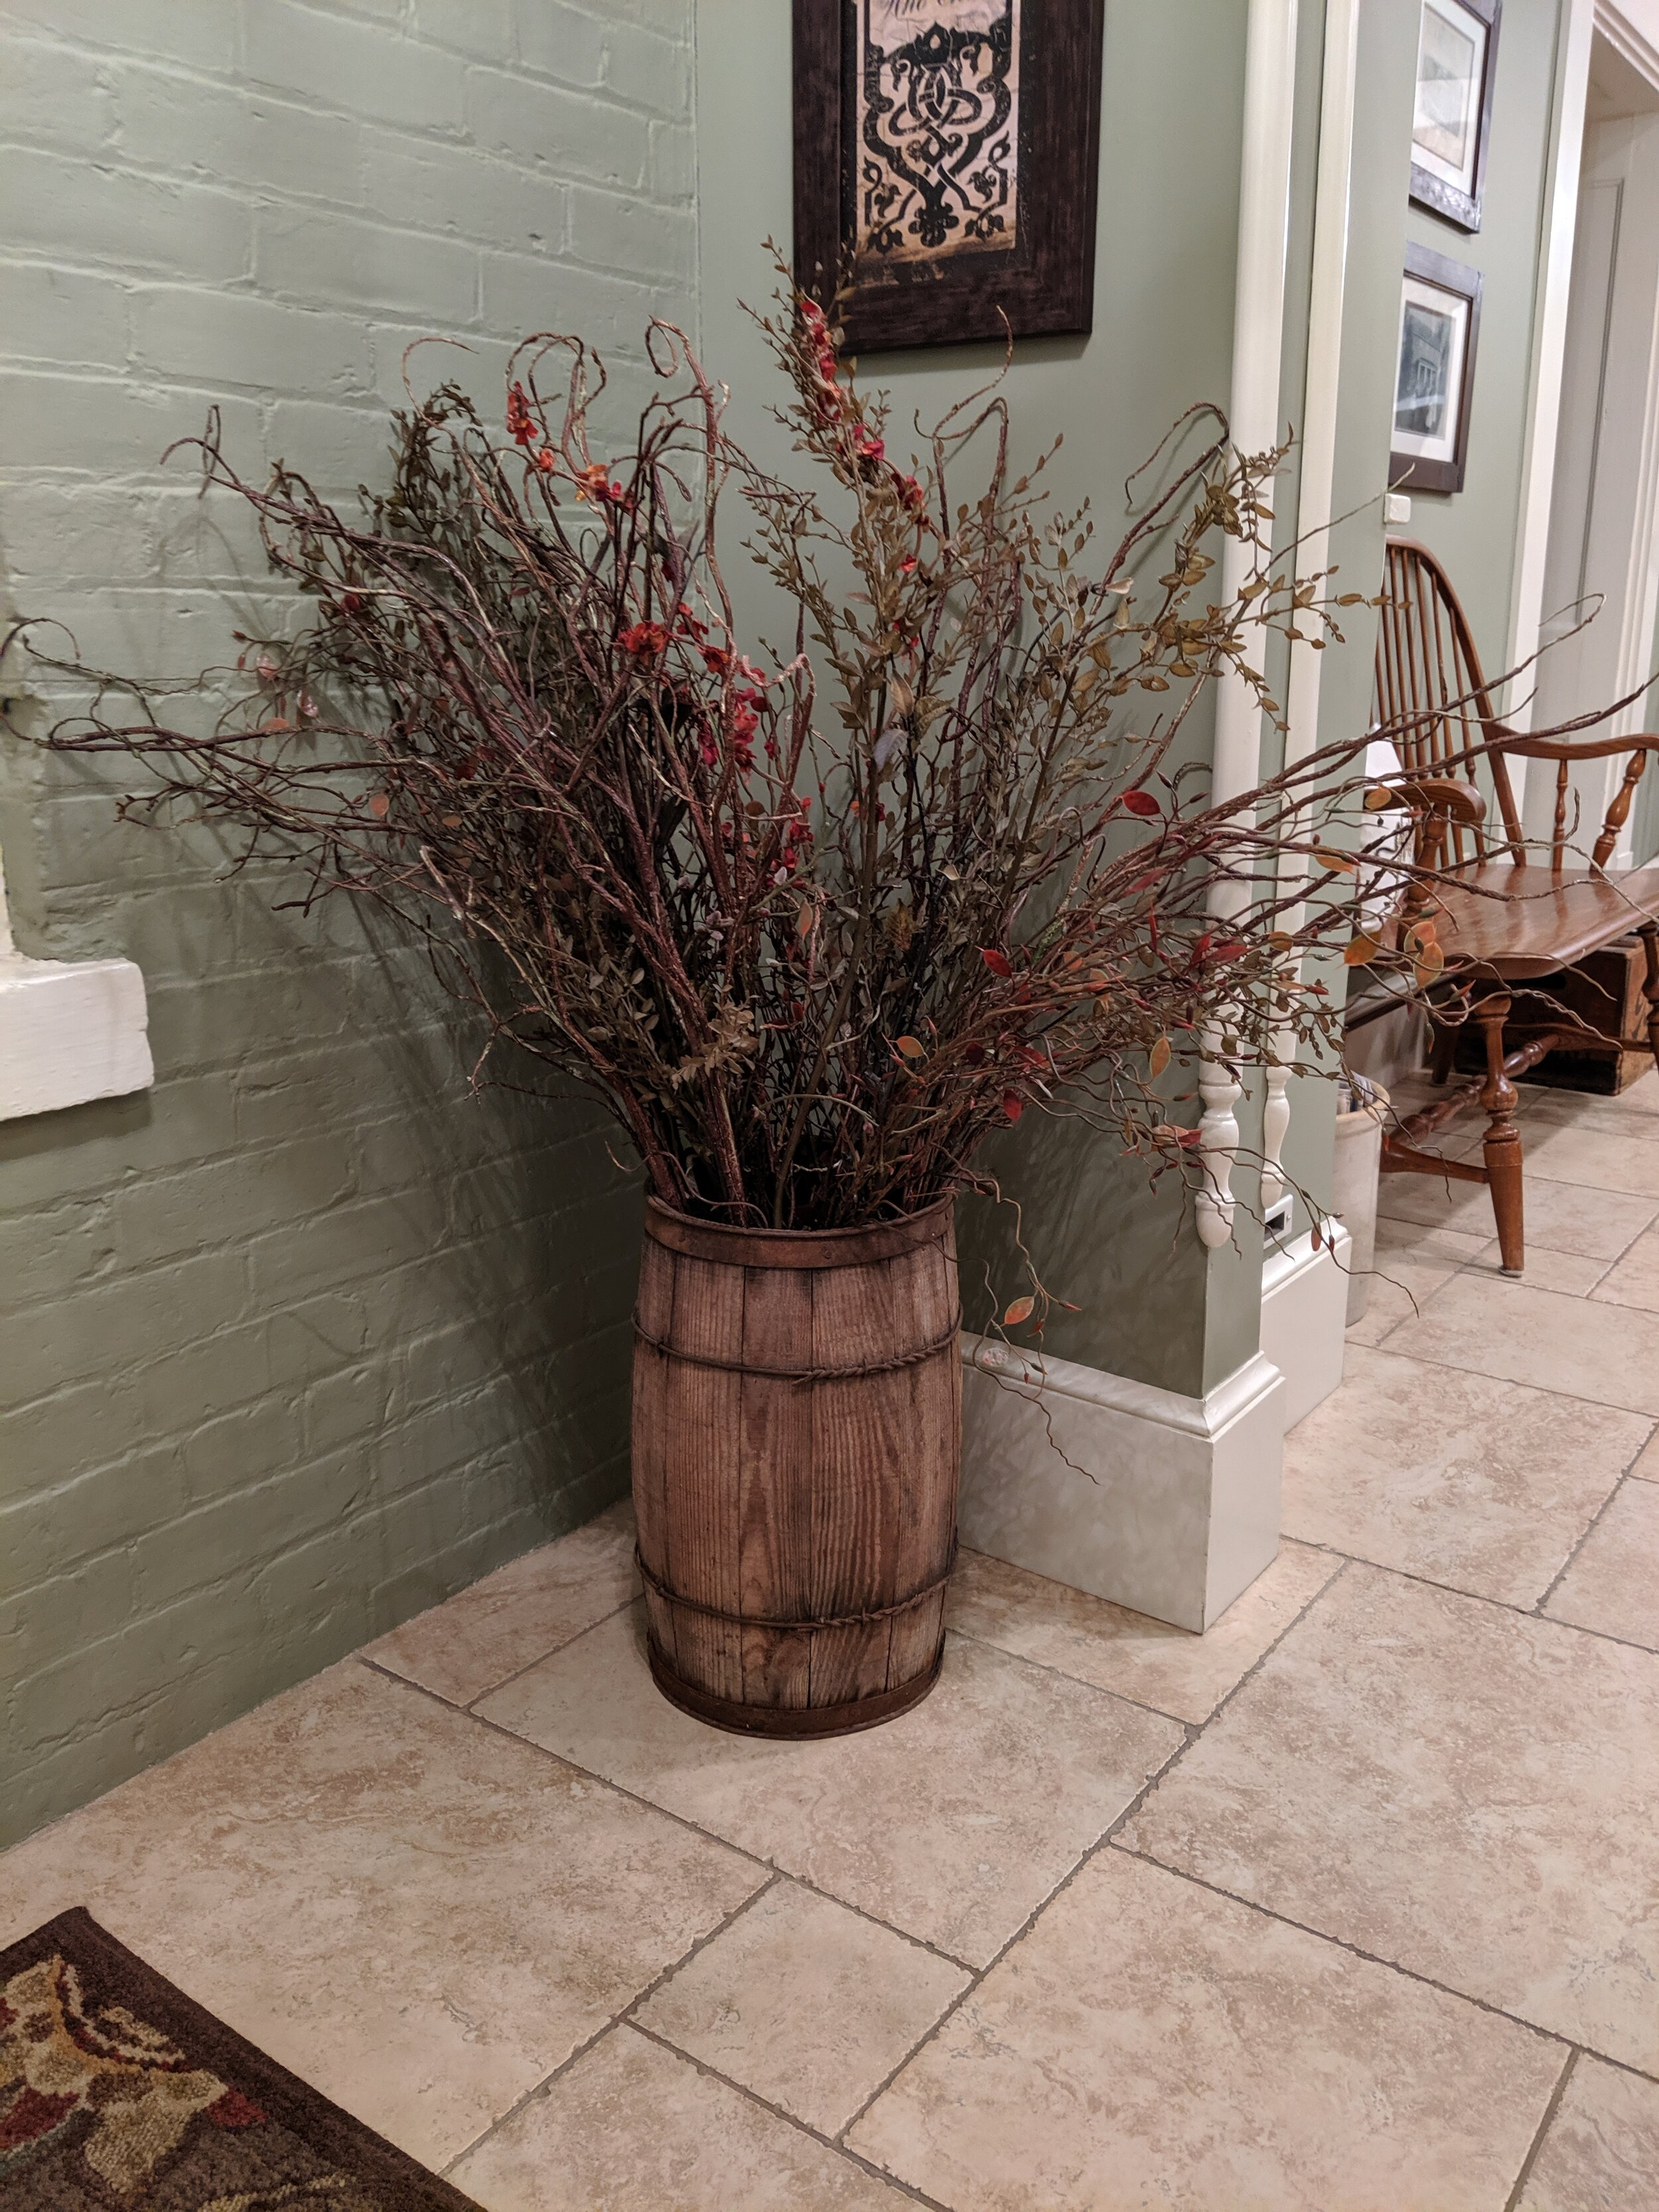 Lori repurposed an old nail keg to hold stems and leaves for fall.